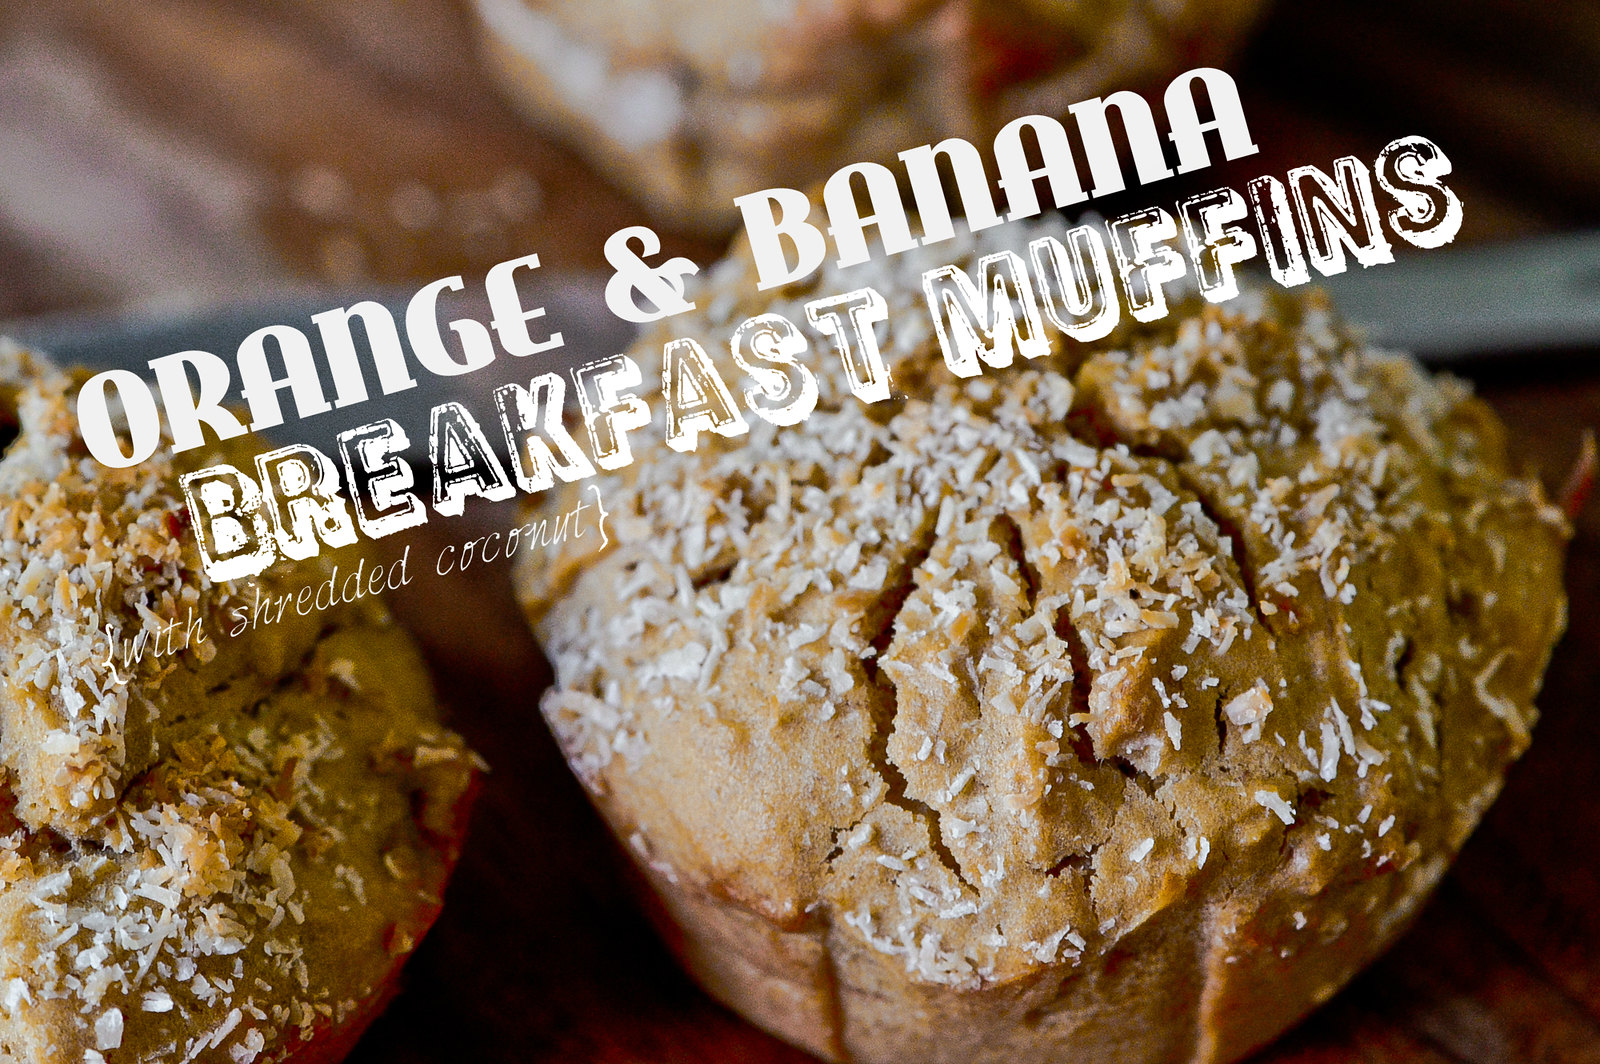 Orange & Banana Breakfast Muffins